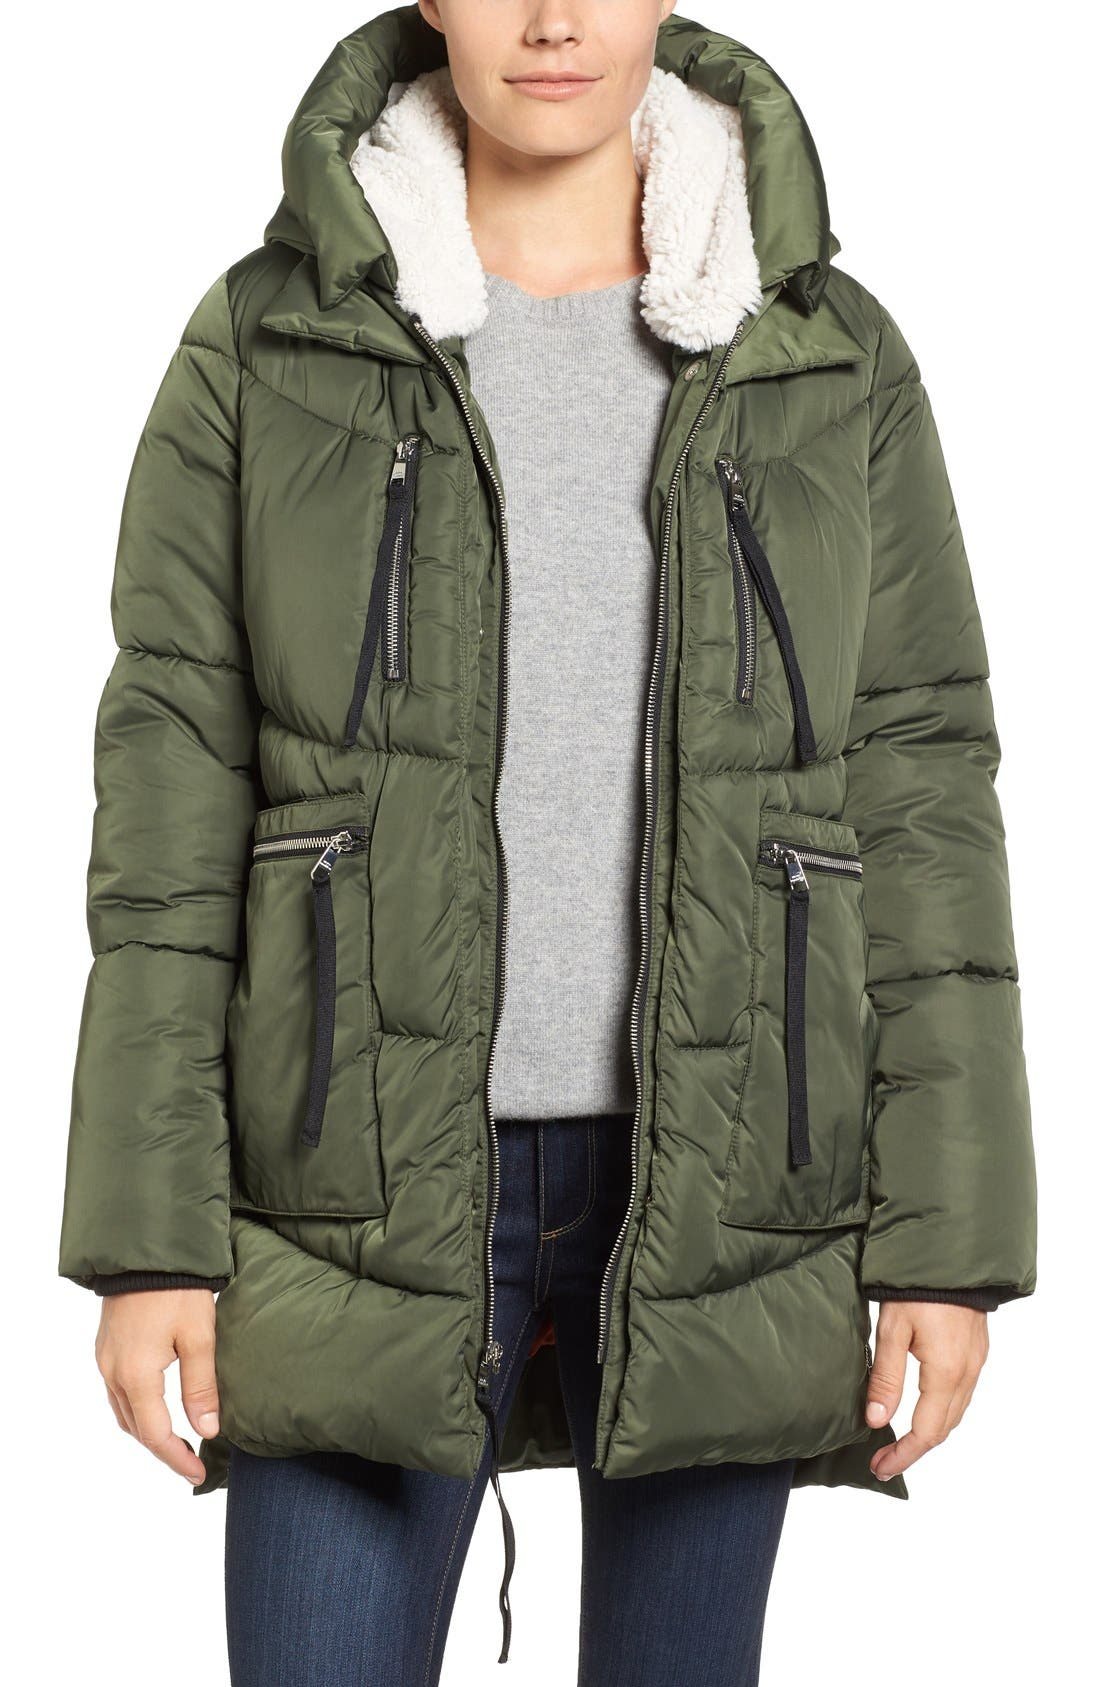 Steve Madden Hooded Puffer Jacket with Faux Shearling Trim